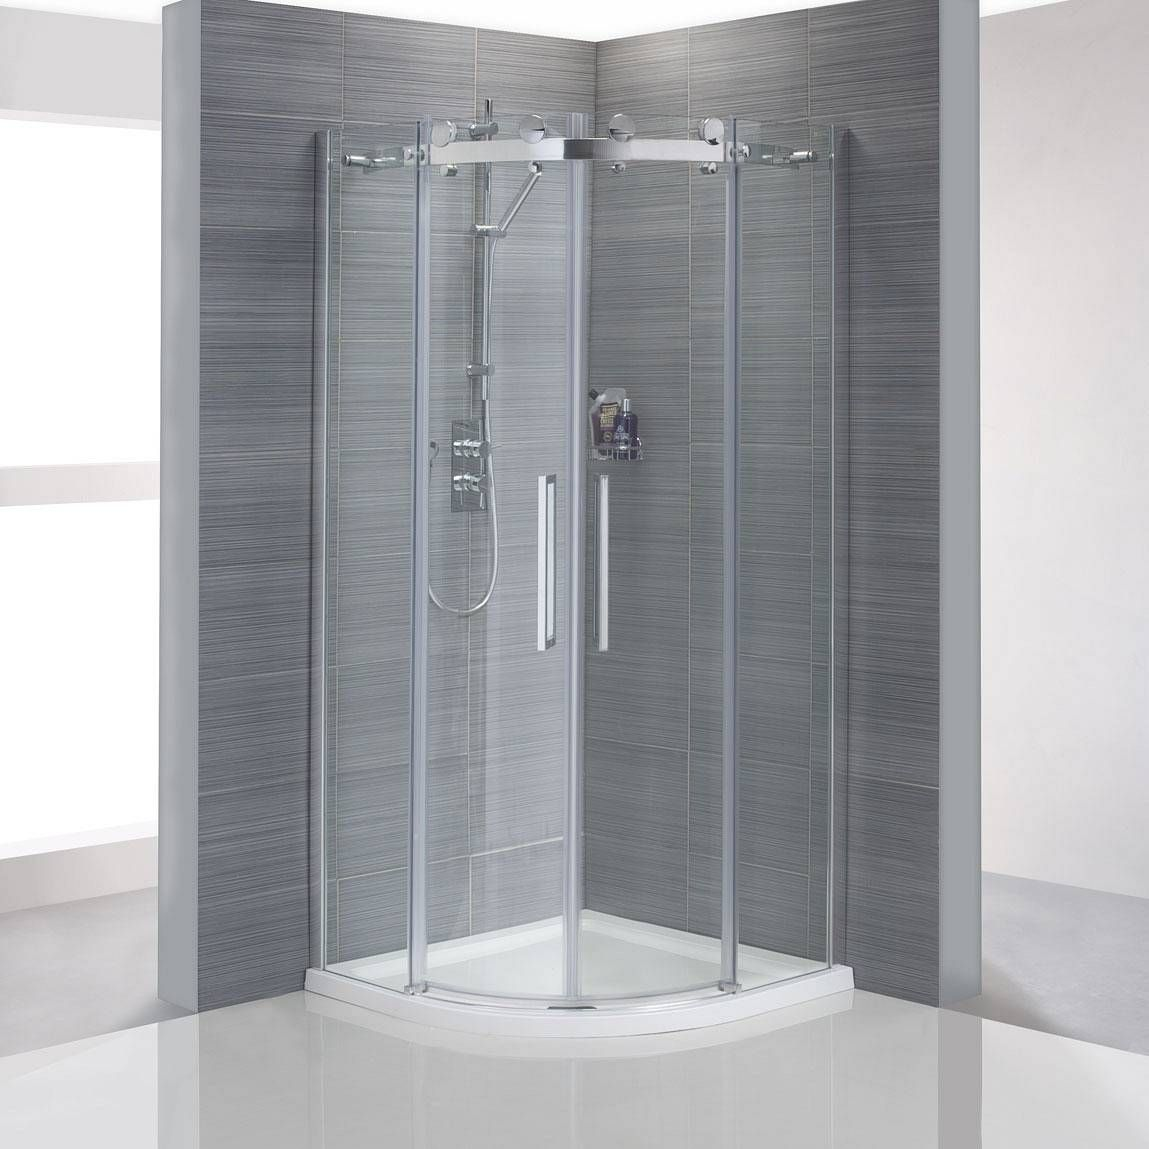 Small Bathroom With Frameless Shower: V8+ Frameless Quadrant Shower Enclosure 900 £229.99 + £89